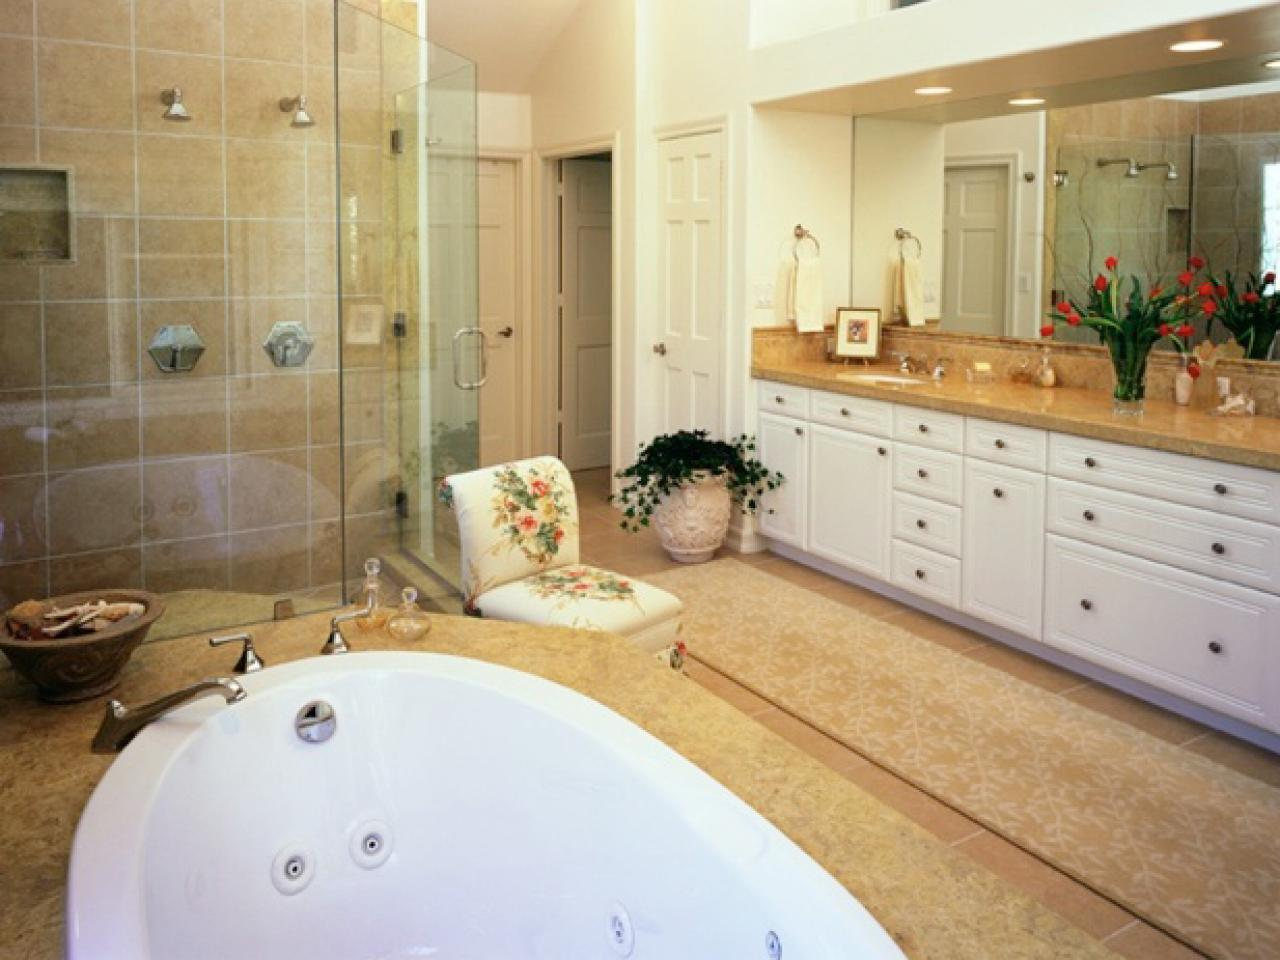 12 Luxurious Bathroom Design Ideas: Bathroom Ideas & Designs